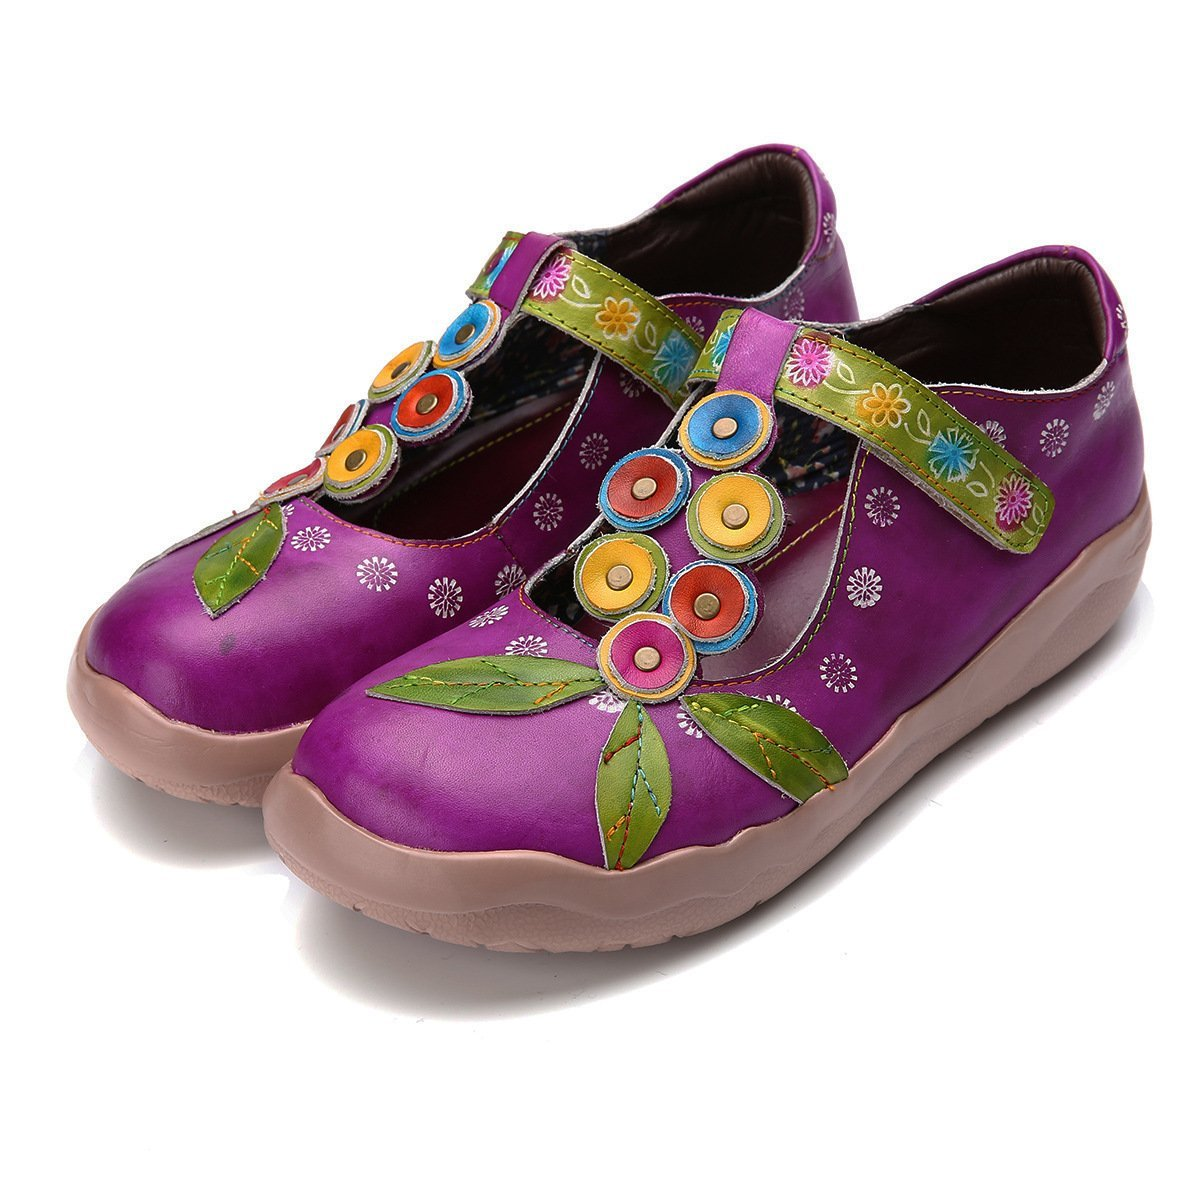 Women Leather Handmade Vintage Printed Flat Shoes